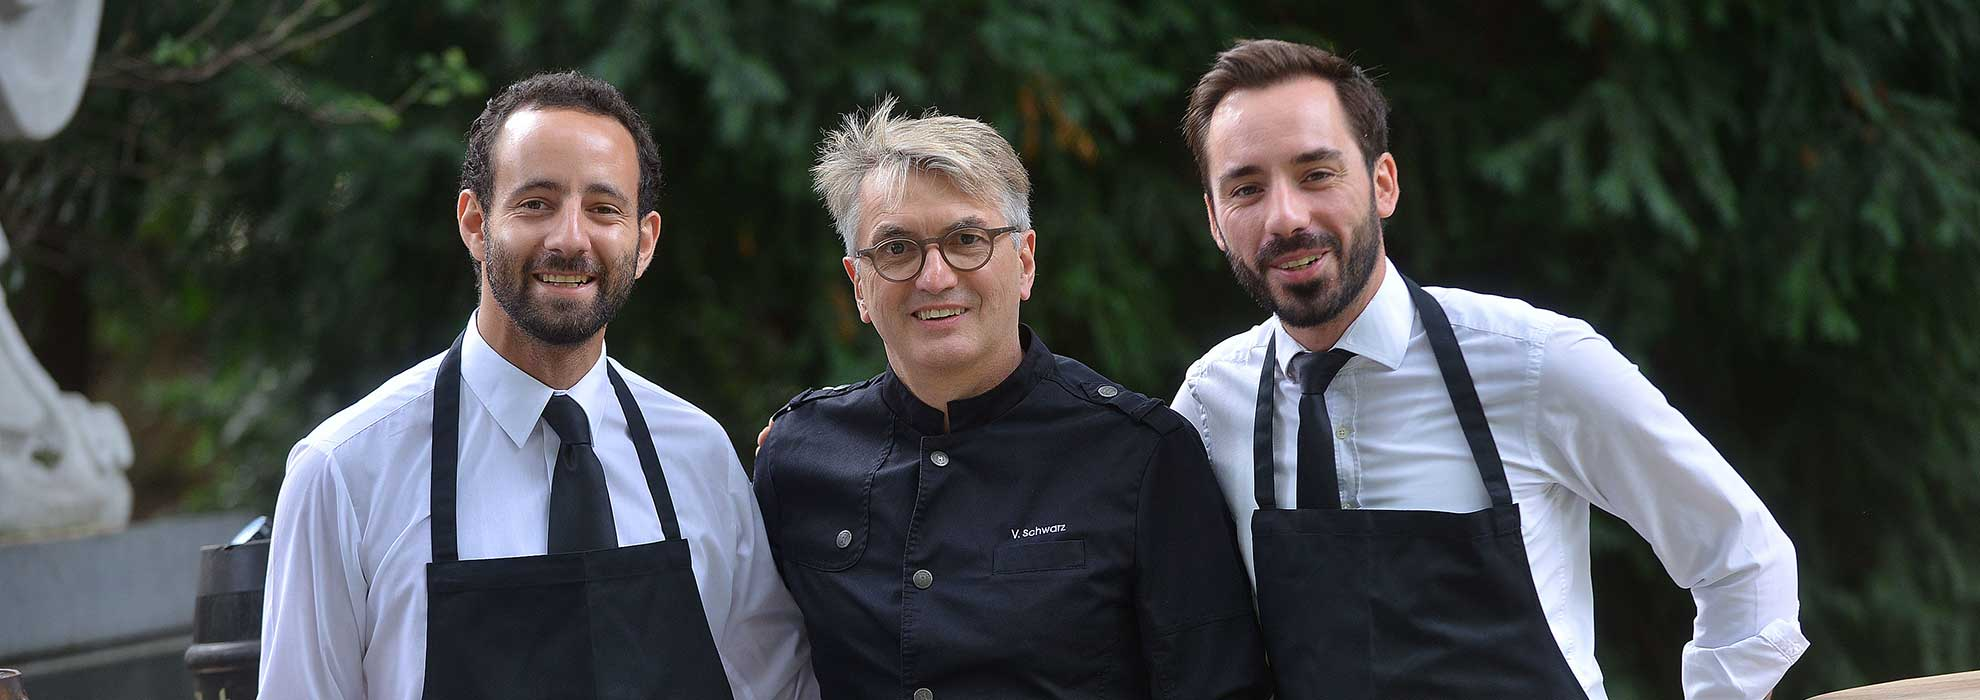 SCHWARZ FOOD Catering Team